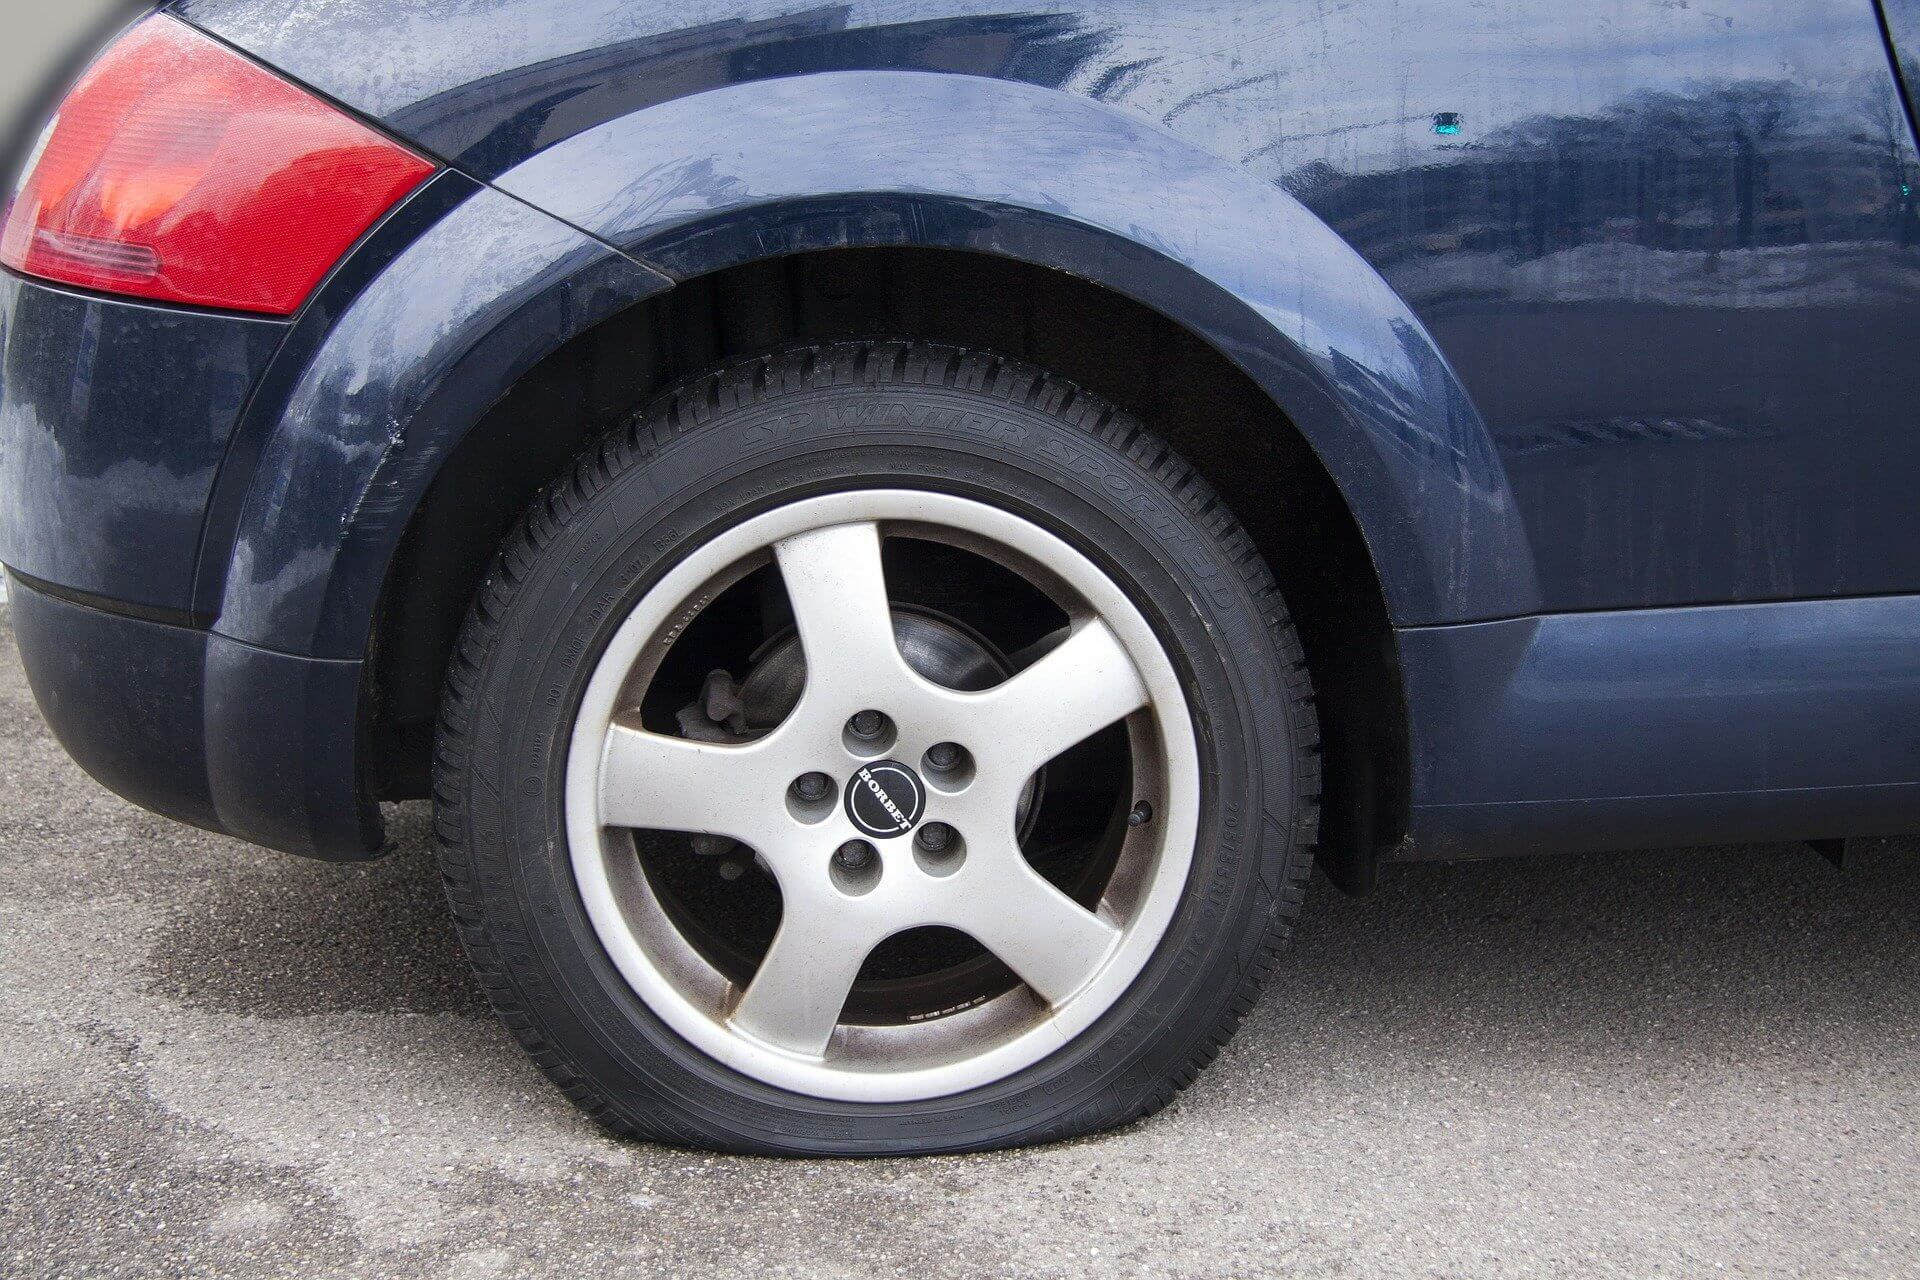 How to Change a Flat Tyre – Easy Flat Tyre Guide